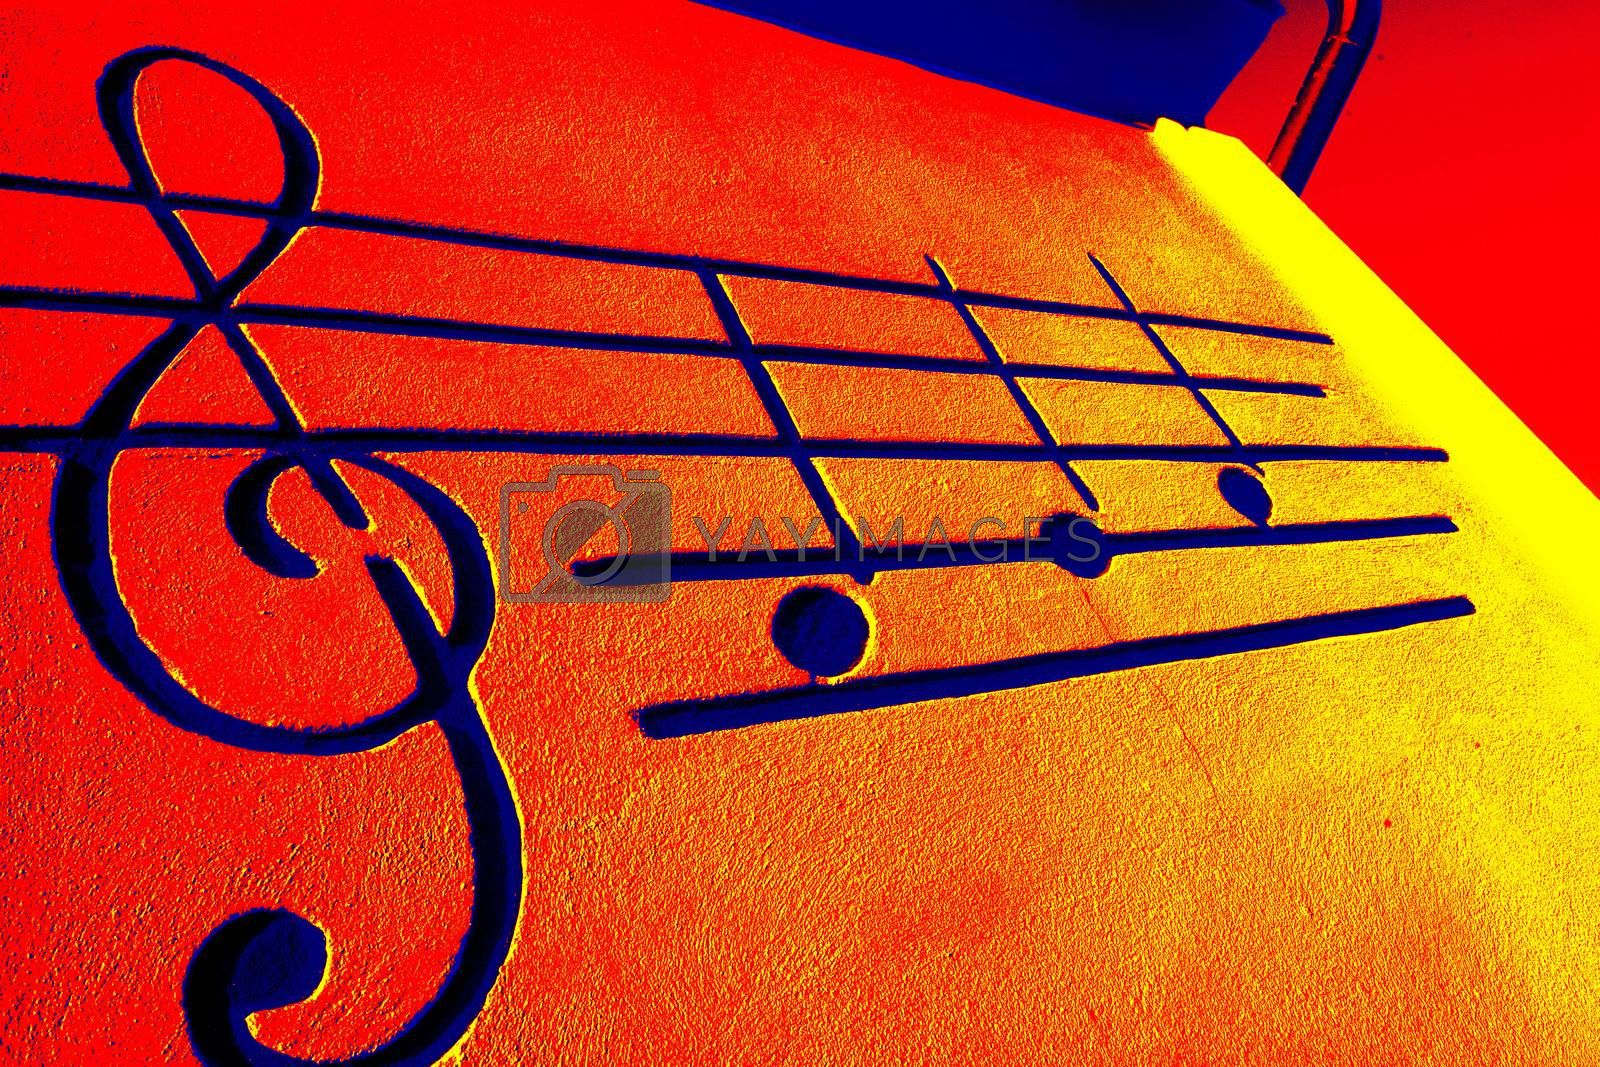 musical notes on a sheet music, red and orange background